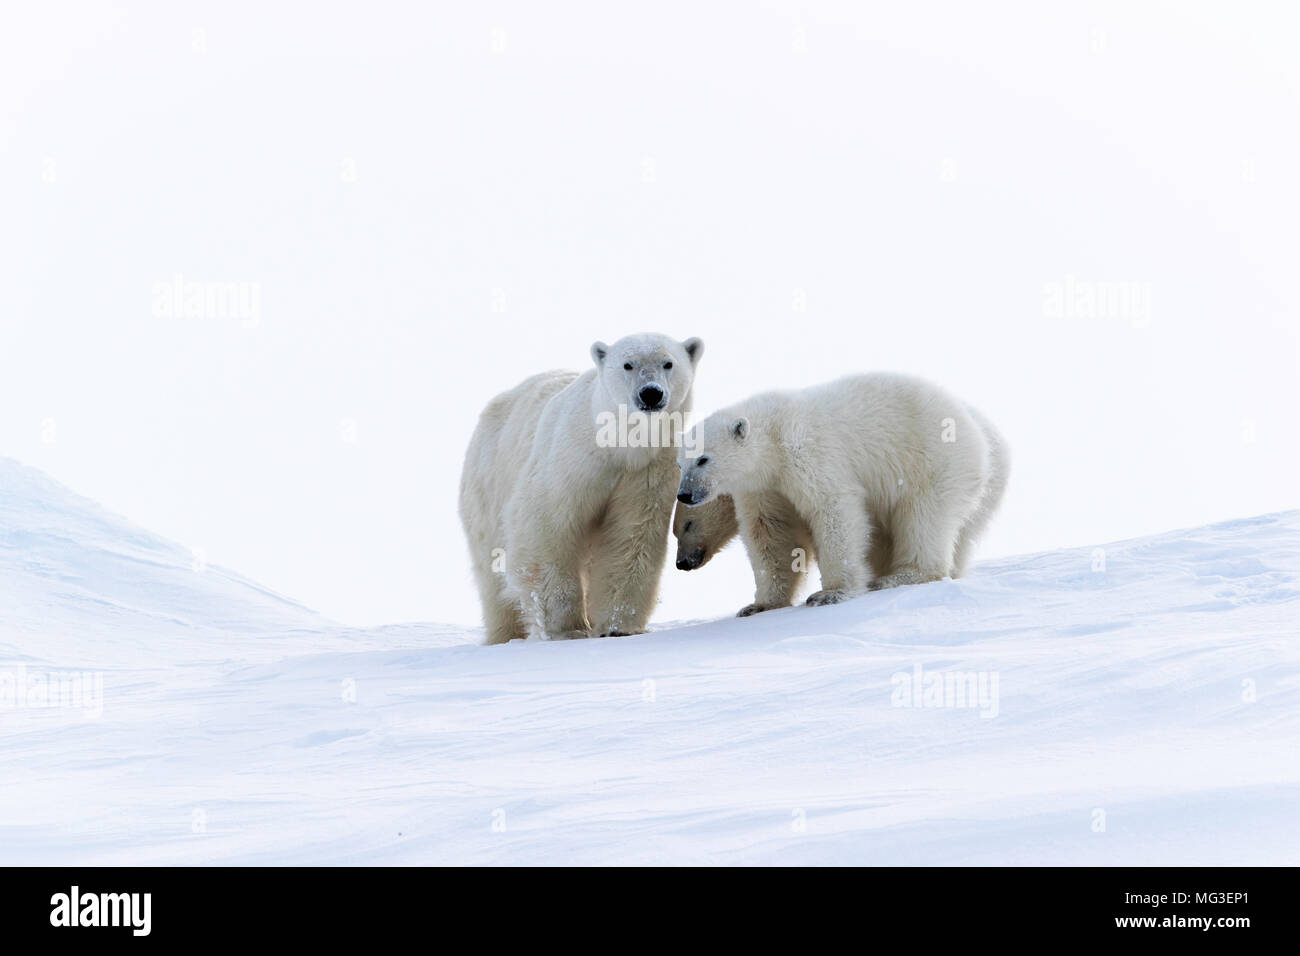 Mother polar bear and yearling cubs standing on an iceberg, Baffin Island, Canada, nunavut, arctic - Stock Image